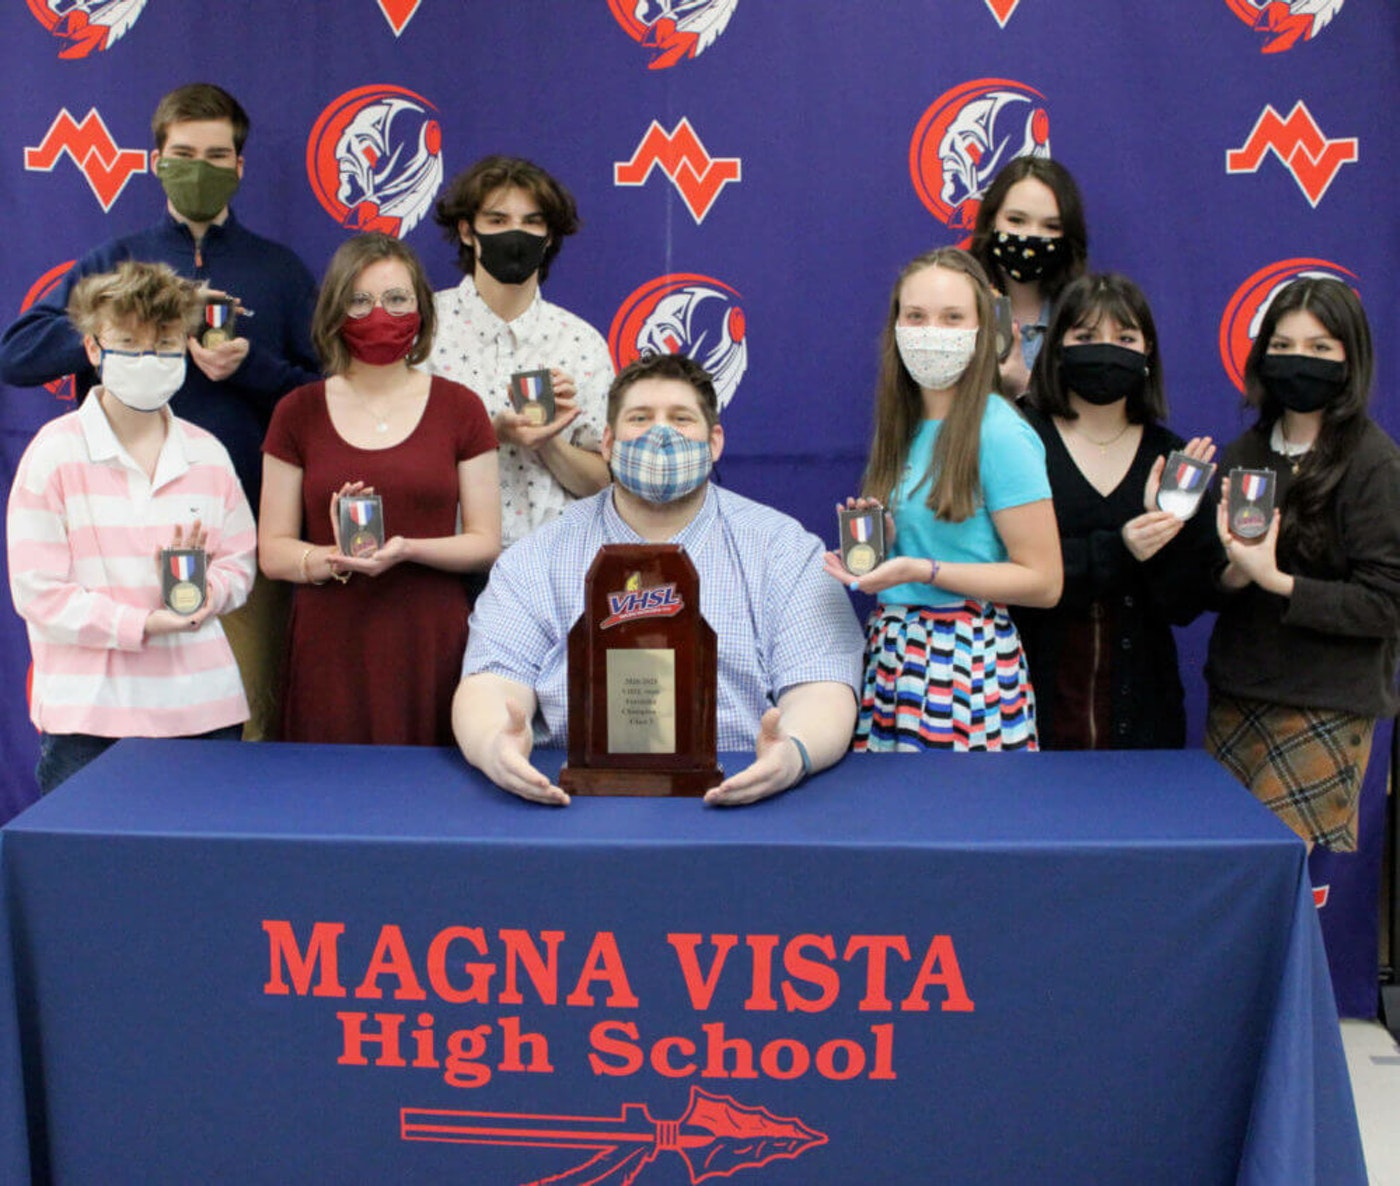 Magna Vista High School won first place at the VHSL Forensics State Championships.  Seated: Bryan Dunn, MVHS Forensics coach Standing Row 1 (L to R): Ava Knight, Lauren Trent, Brianna Tatum, Ivanna Gutierrez, Joanna Gutierrez Standing Row 2 (L to R): Brayden Lynch, William Ortega, MacKenzie Morrison. Contributed photo.